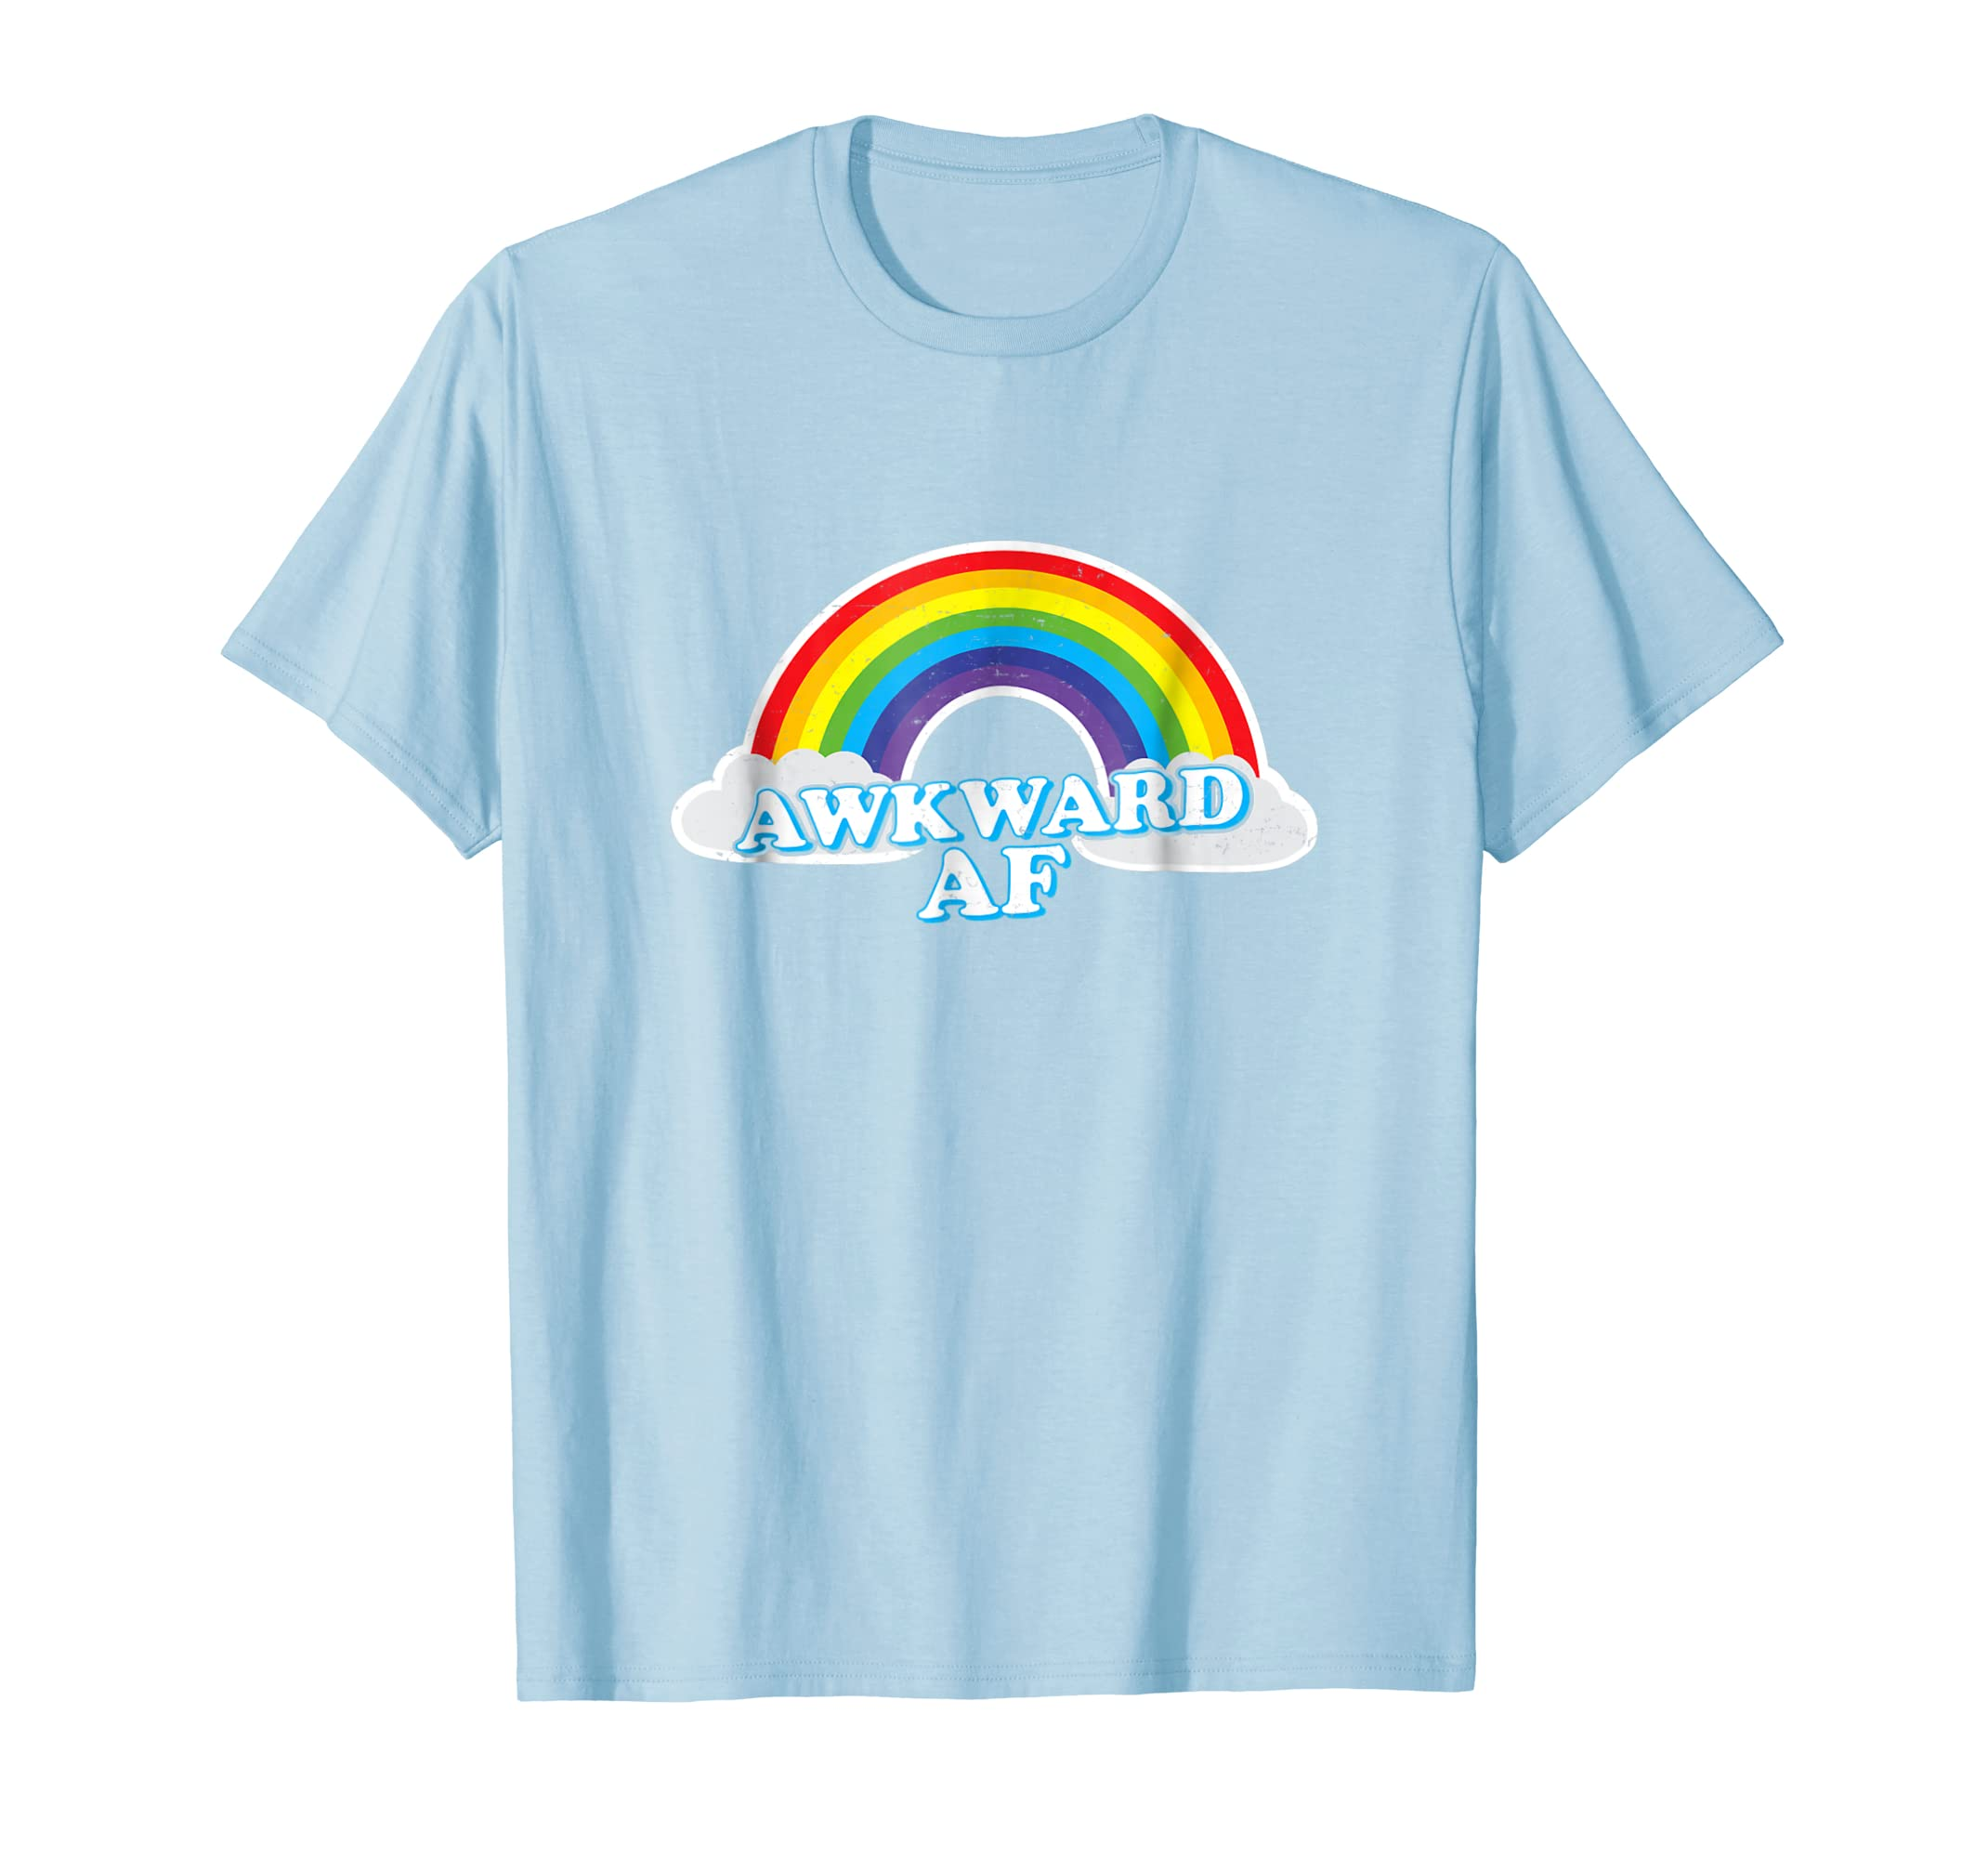 0a600c445 Amazon.com: Awkward AF Rainbow T-Shirt: Clothing